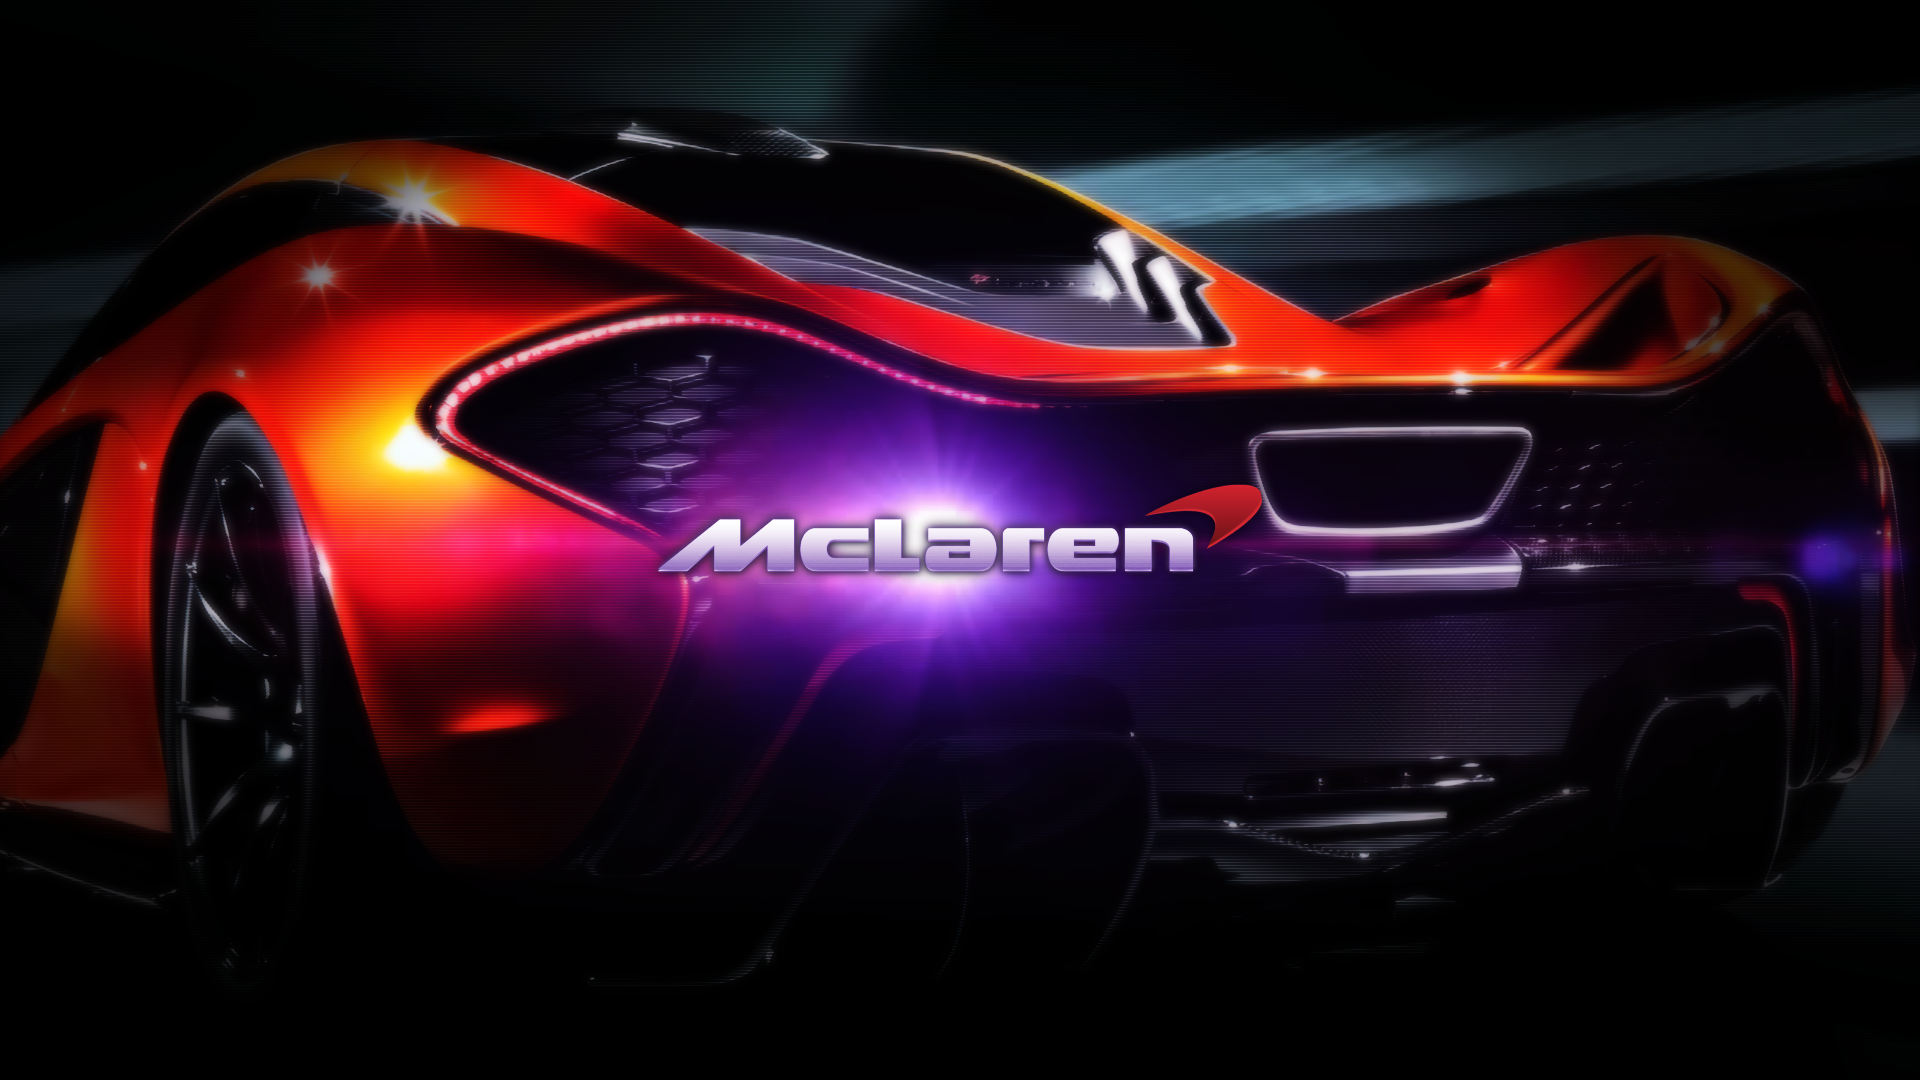 McLaren P1 Background